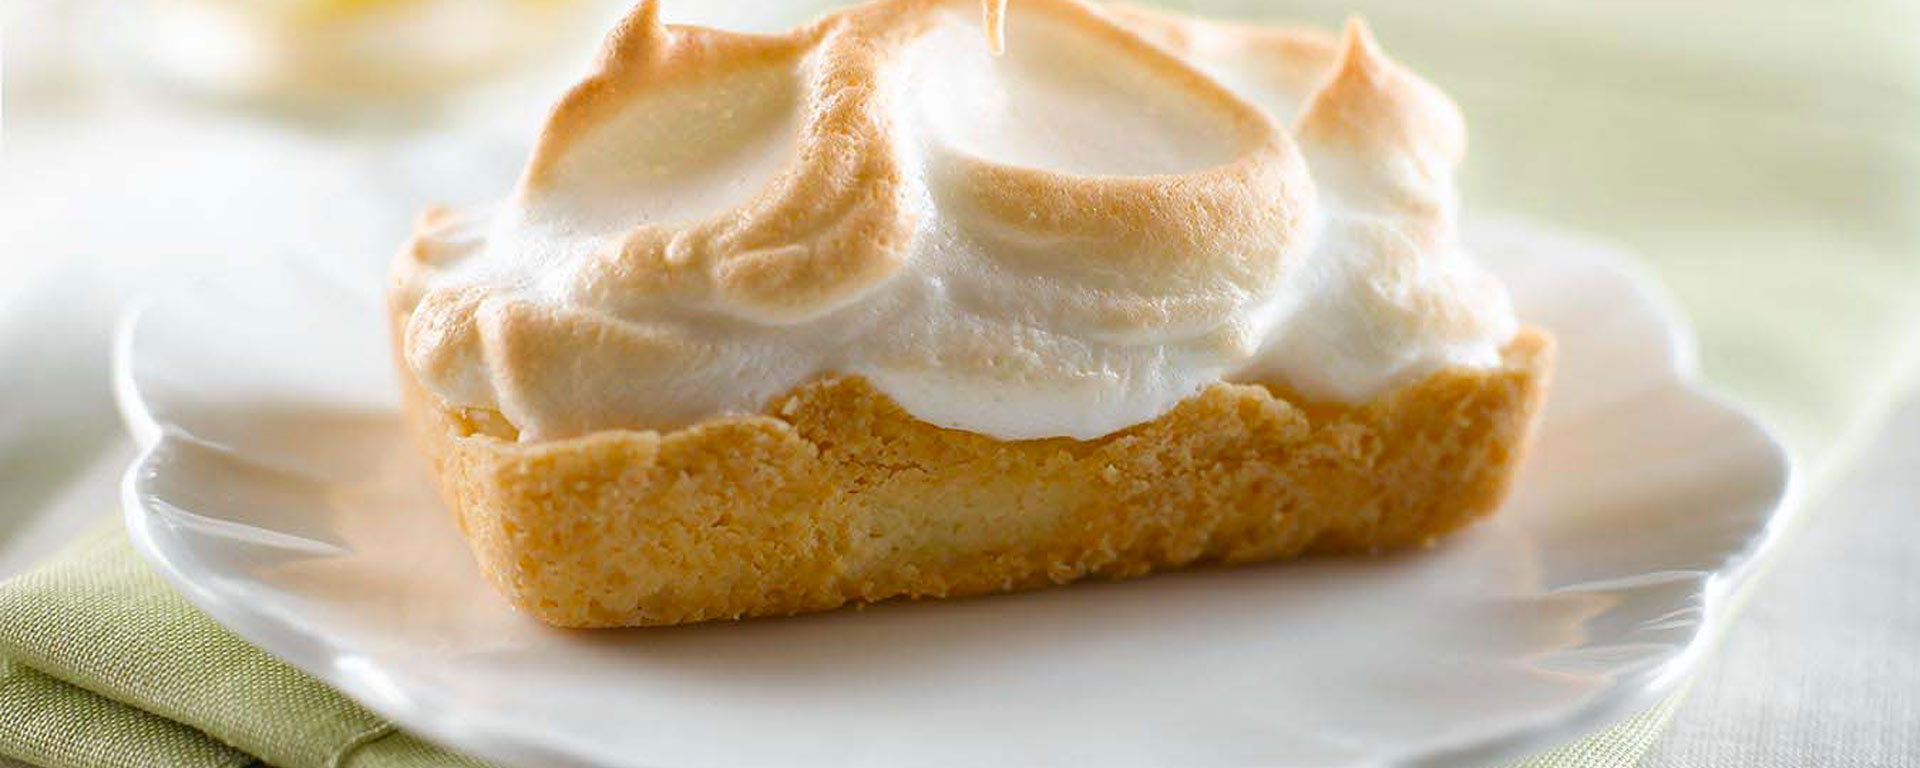 Photo for - Sour Cream Lemon Meringue Shortbread Tarts